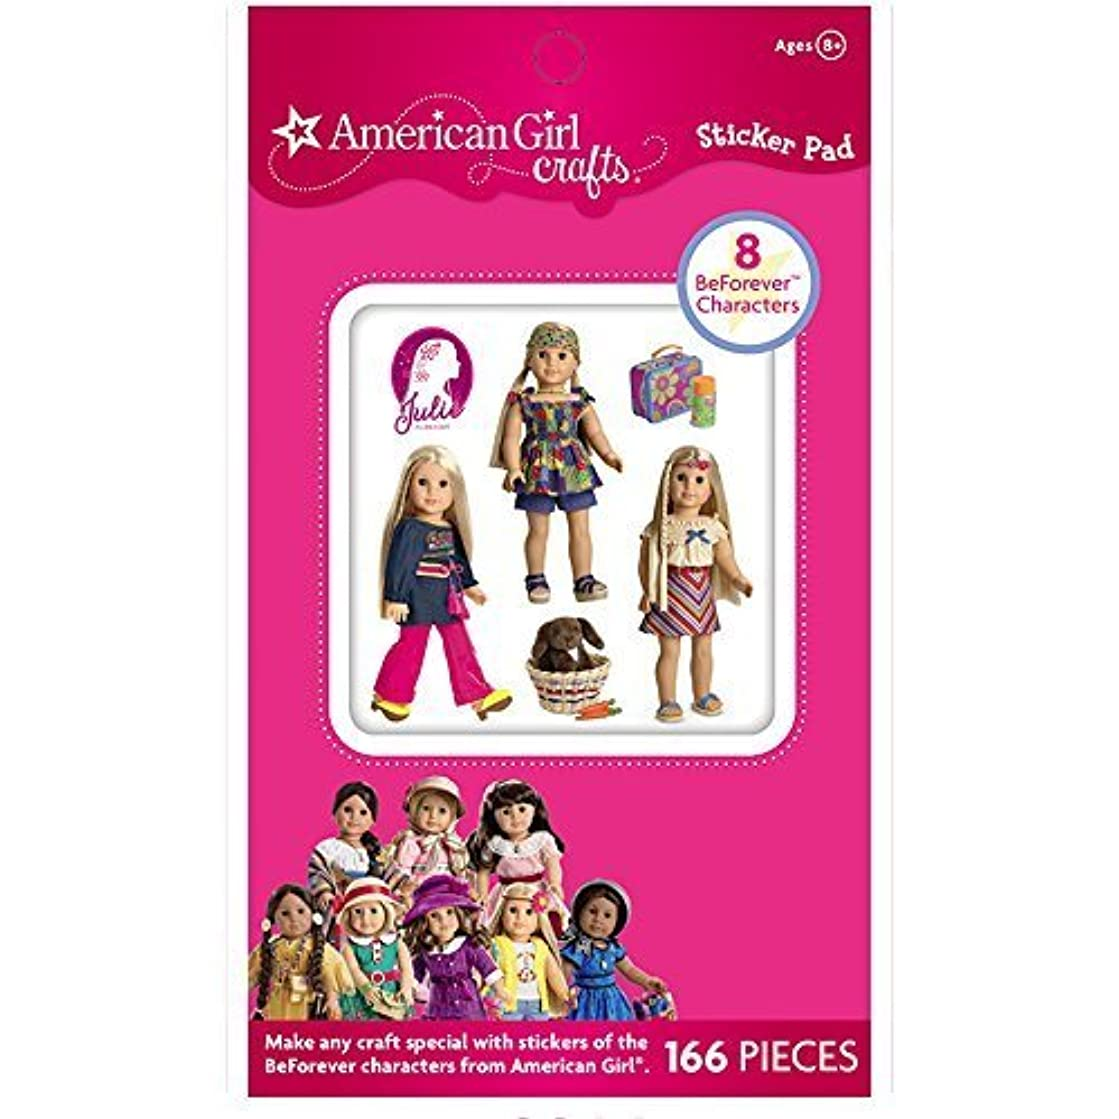 American Girl Crafts Vintage Fashion Dolls Stickers for Girls, 166pc